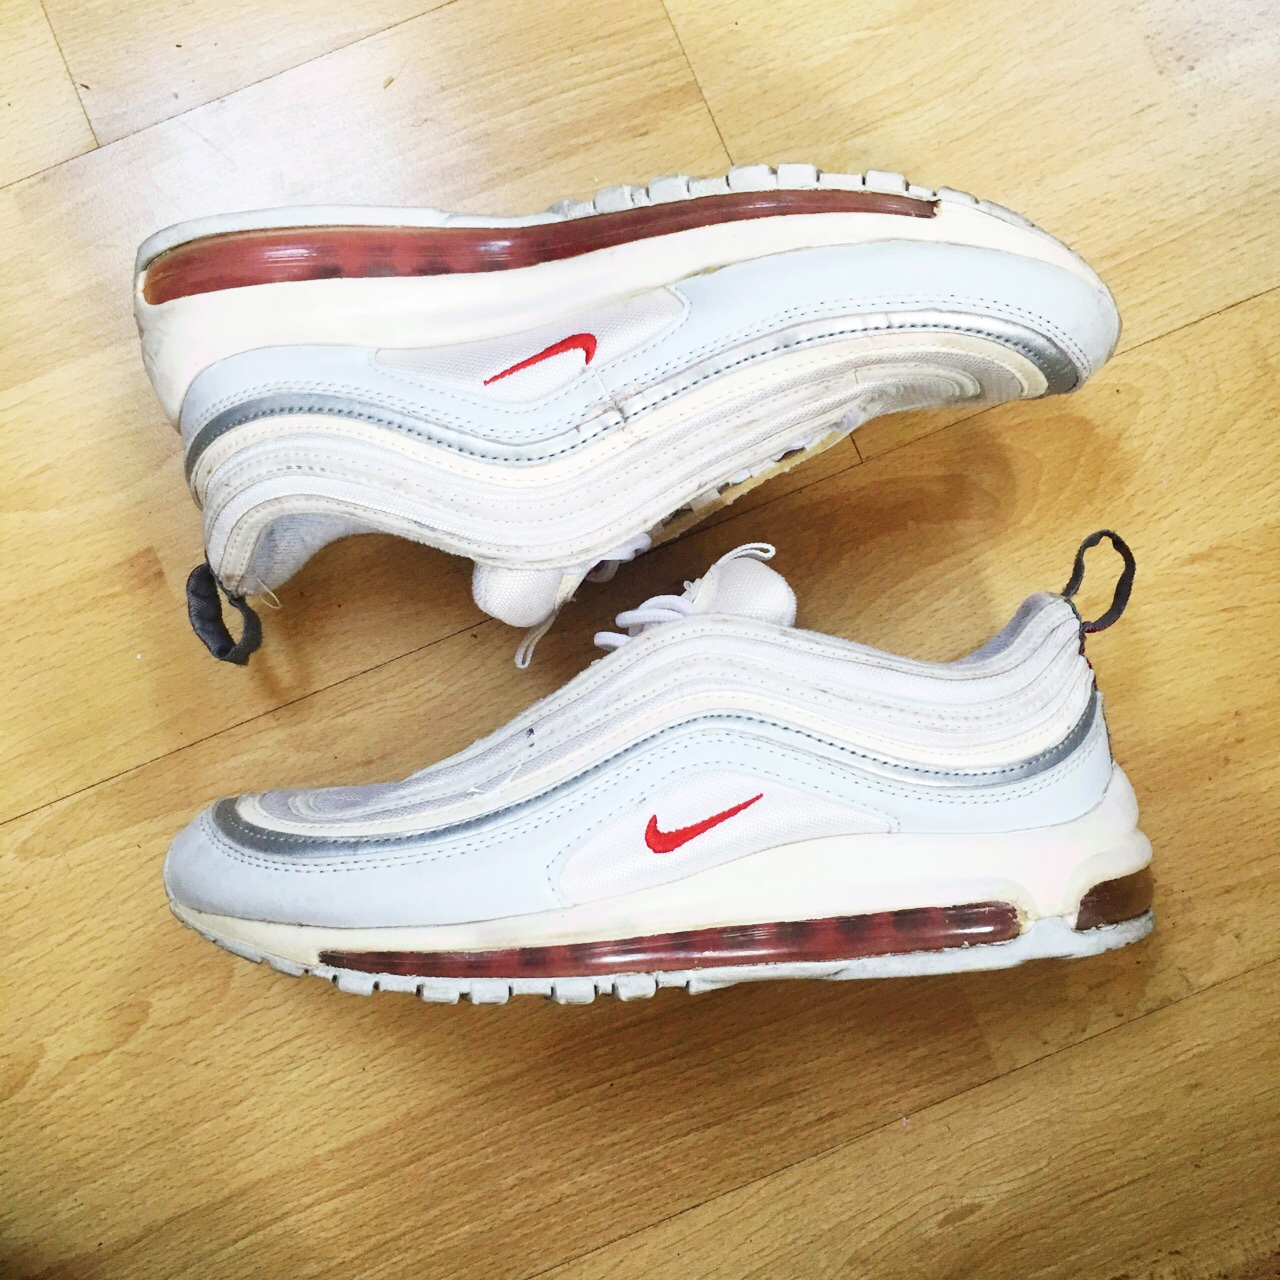 MOST PENG NIKE AIR MAX 97 TAKING OFFERS WANT GONE Depop